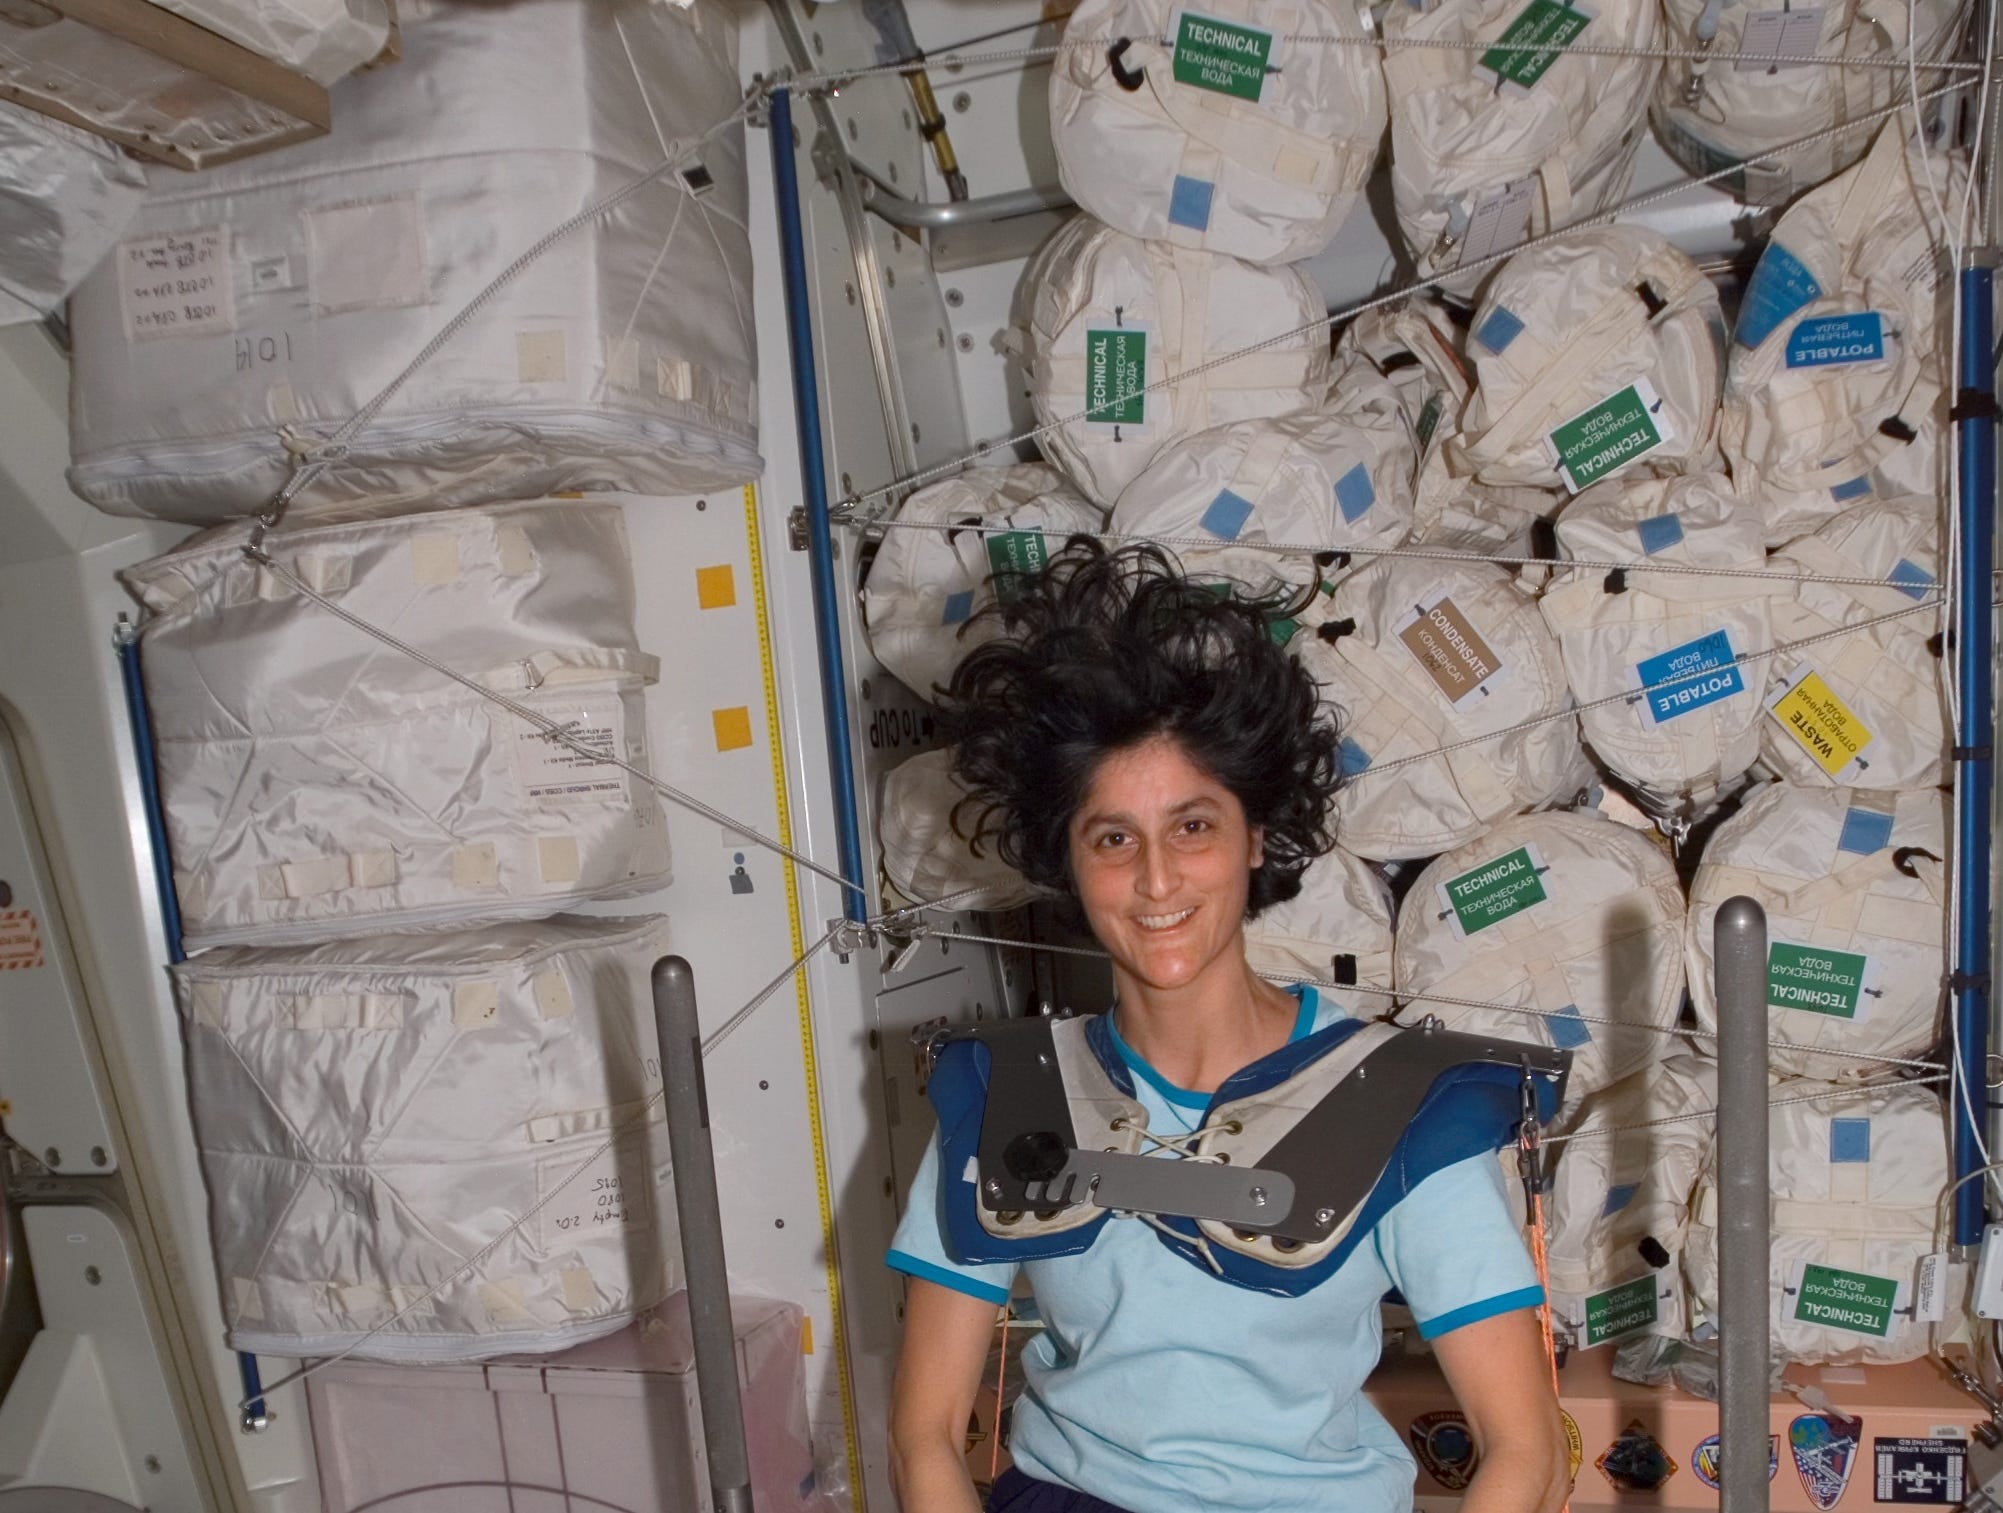 Astronaut Sunita L. Williams, Expedition 15 flight engineer, wearing squat harness pads, poses for a photo while using the Interim Resistive Exercise Device (IRED) equipment in the Unity node of the International Space Station. In addition to formerly being the only woman to complete seven spacewalks as of 2017, Williams was the first person to run a marathon in Space in 2007.